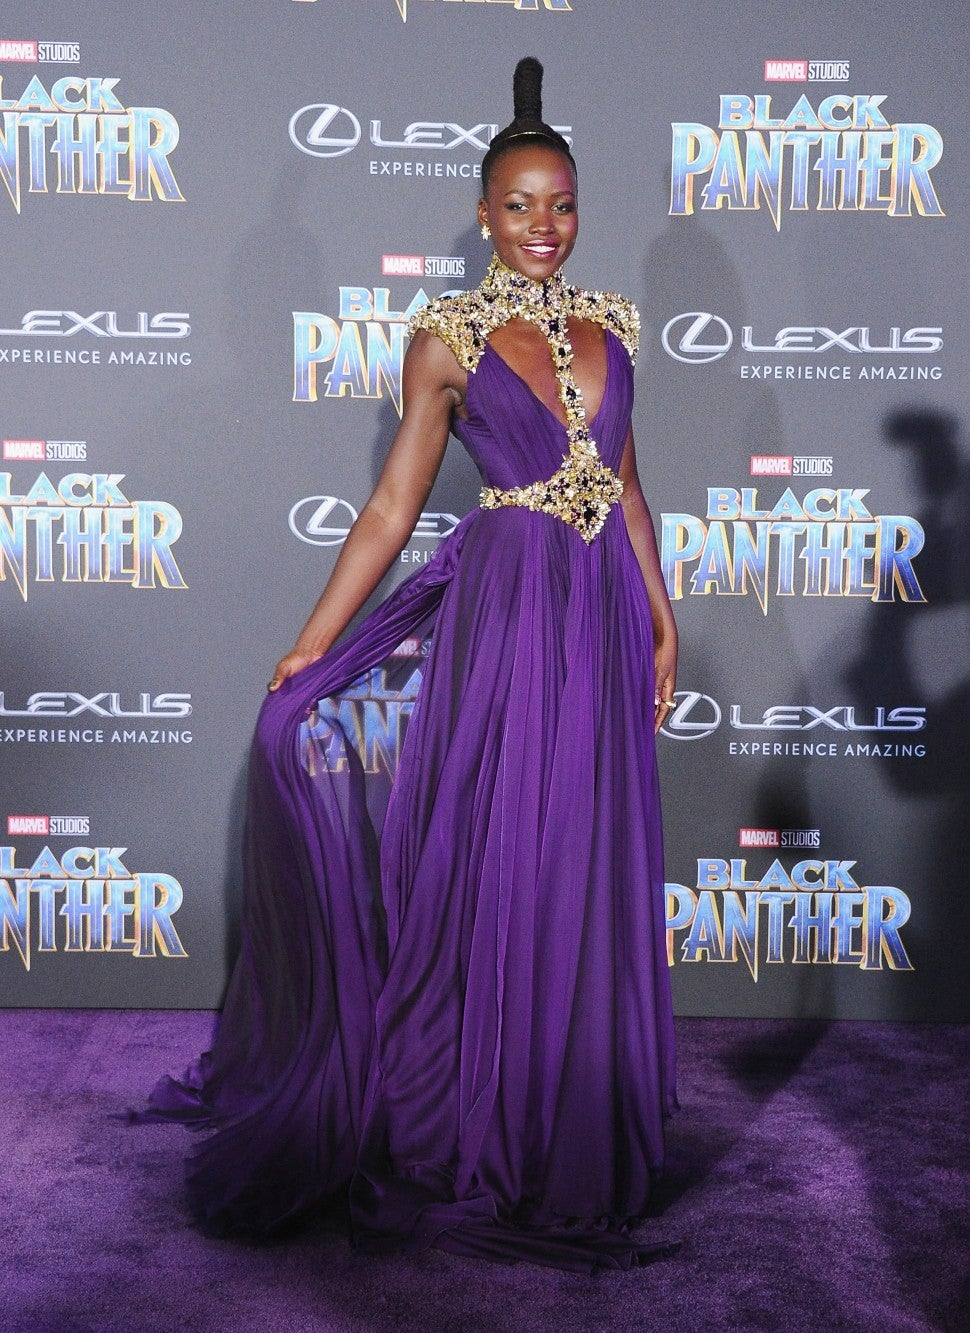 Lupita Nyong'o at Black Panther premiere